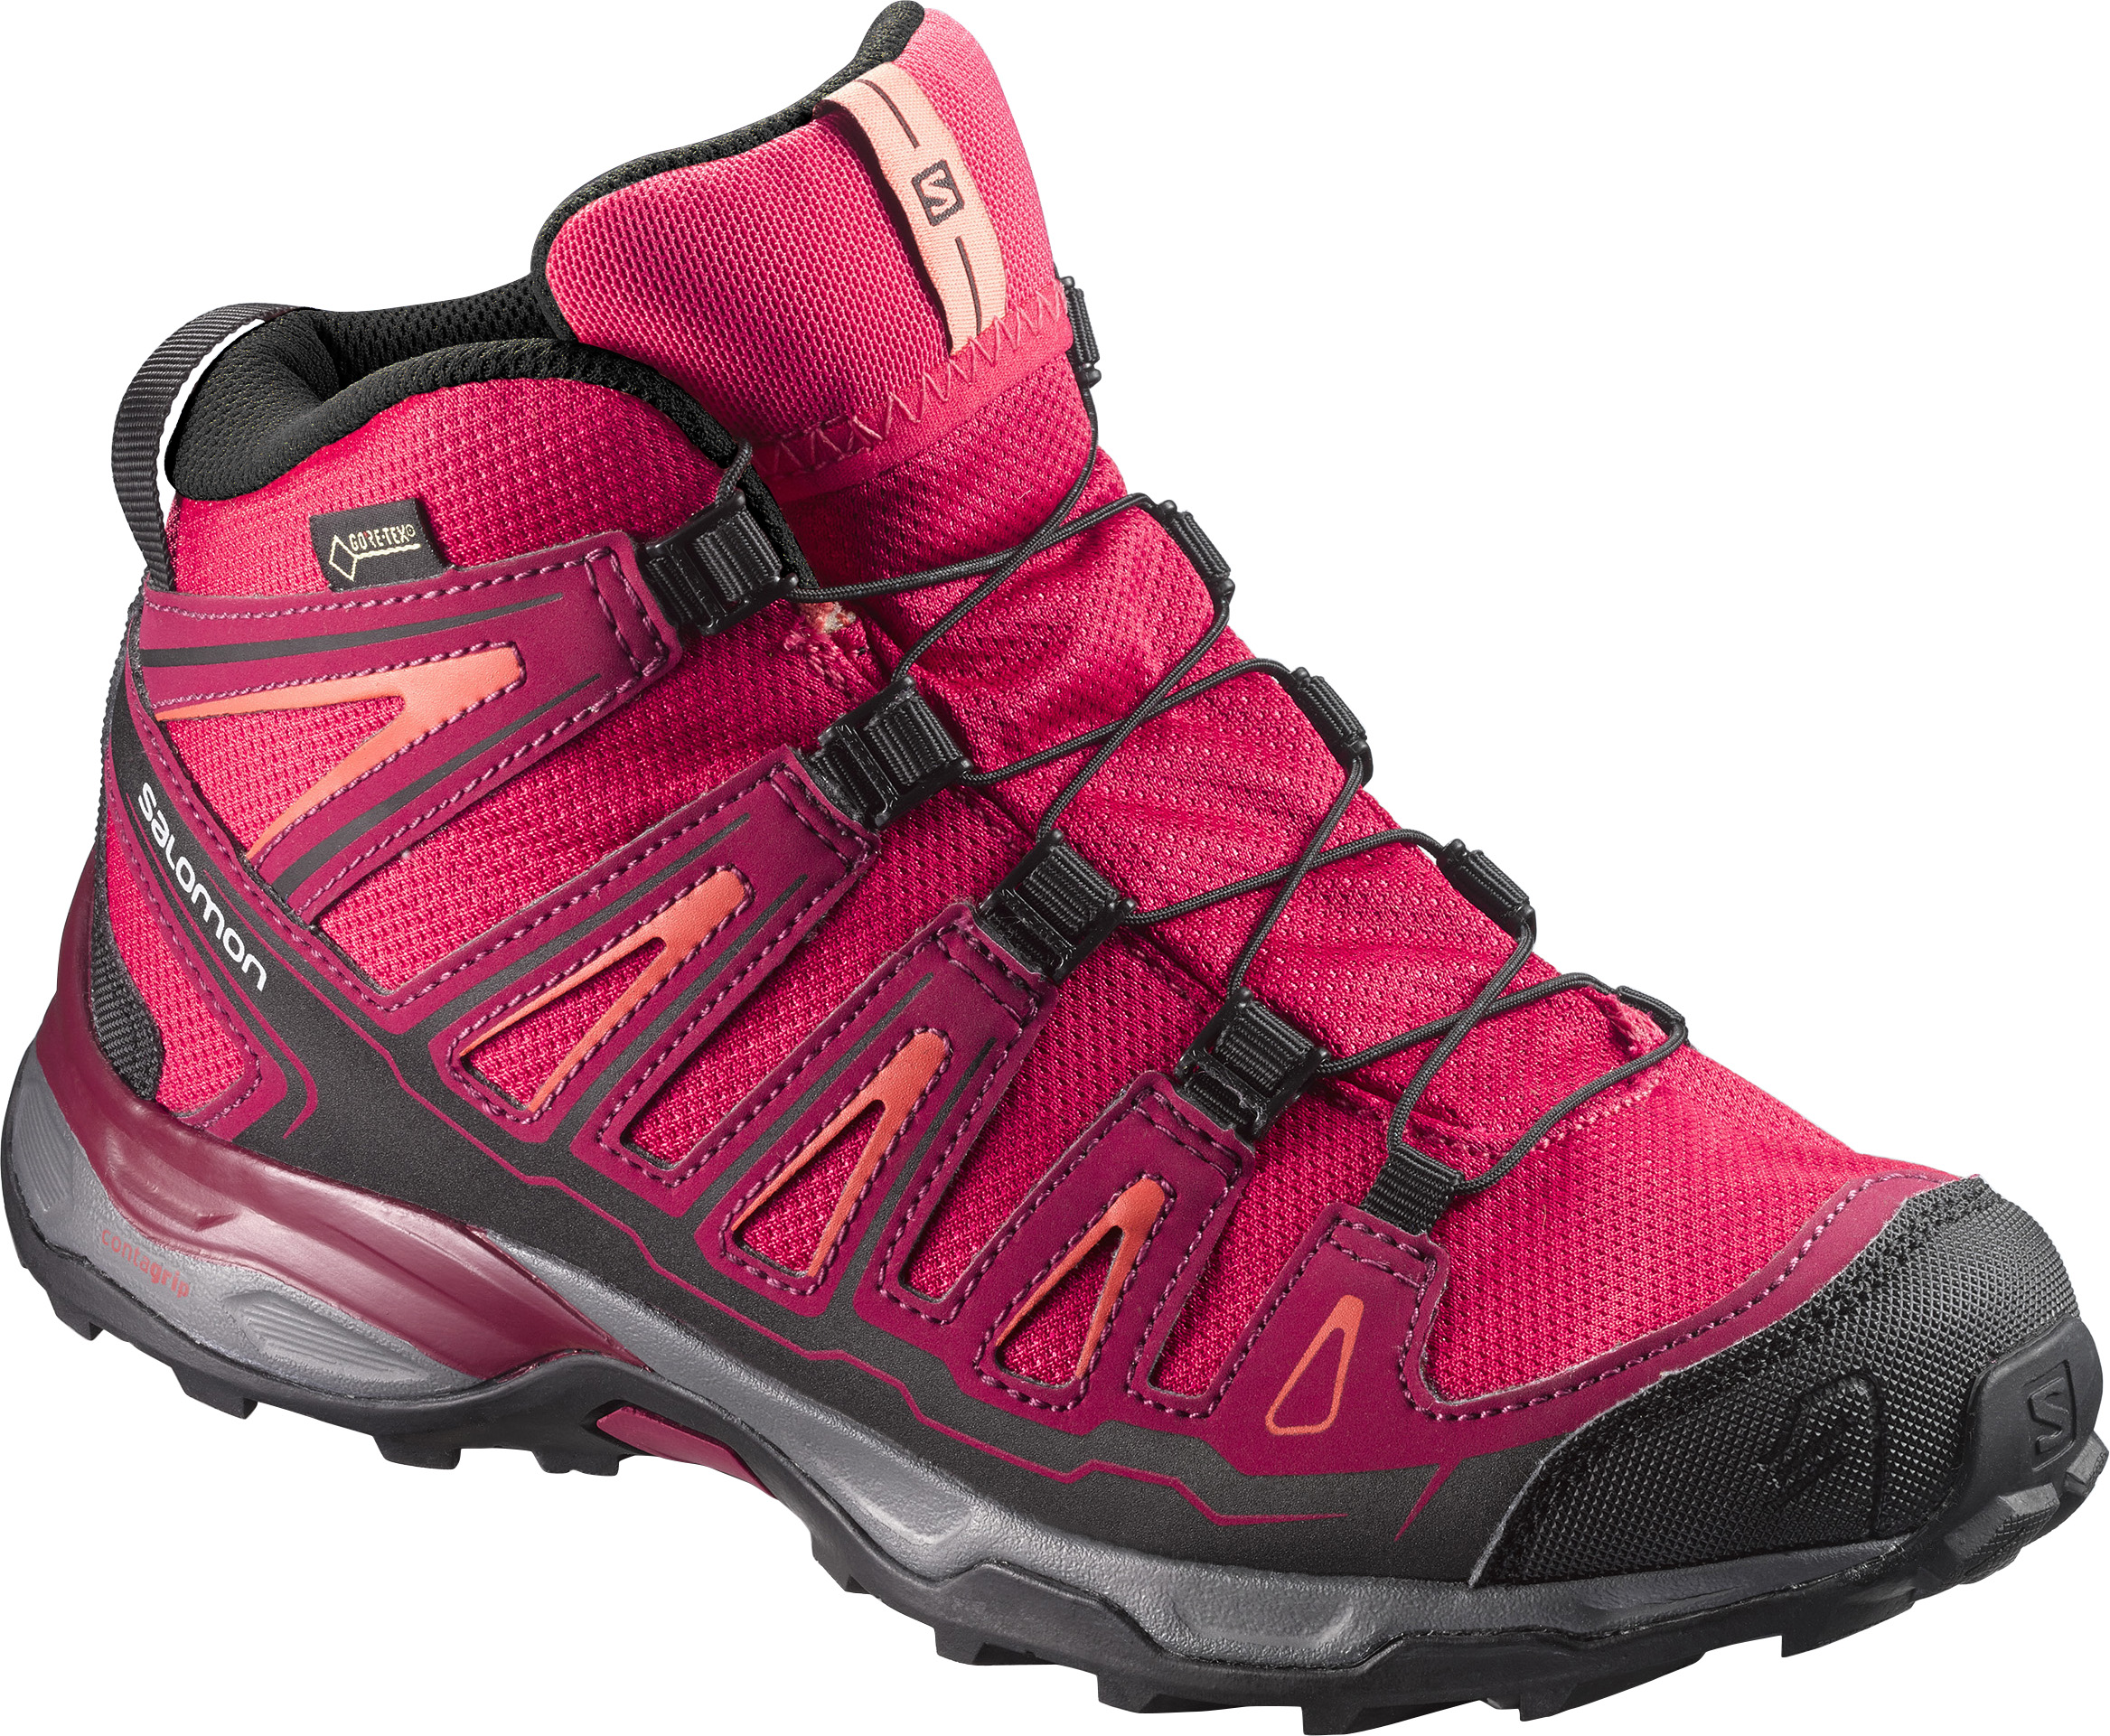 SALOMON X ULTRA MID GTX J VIRTUAL PINK